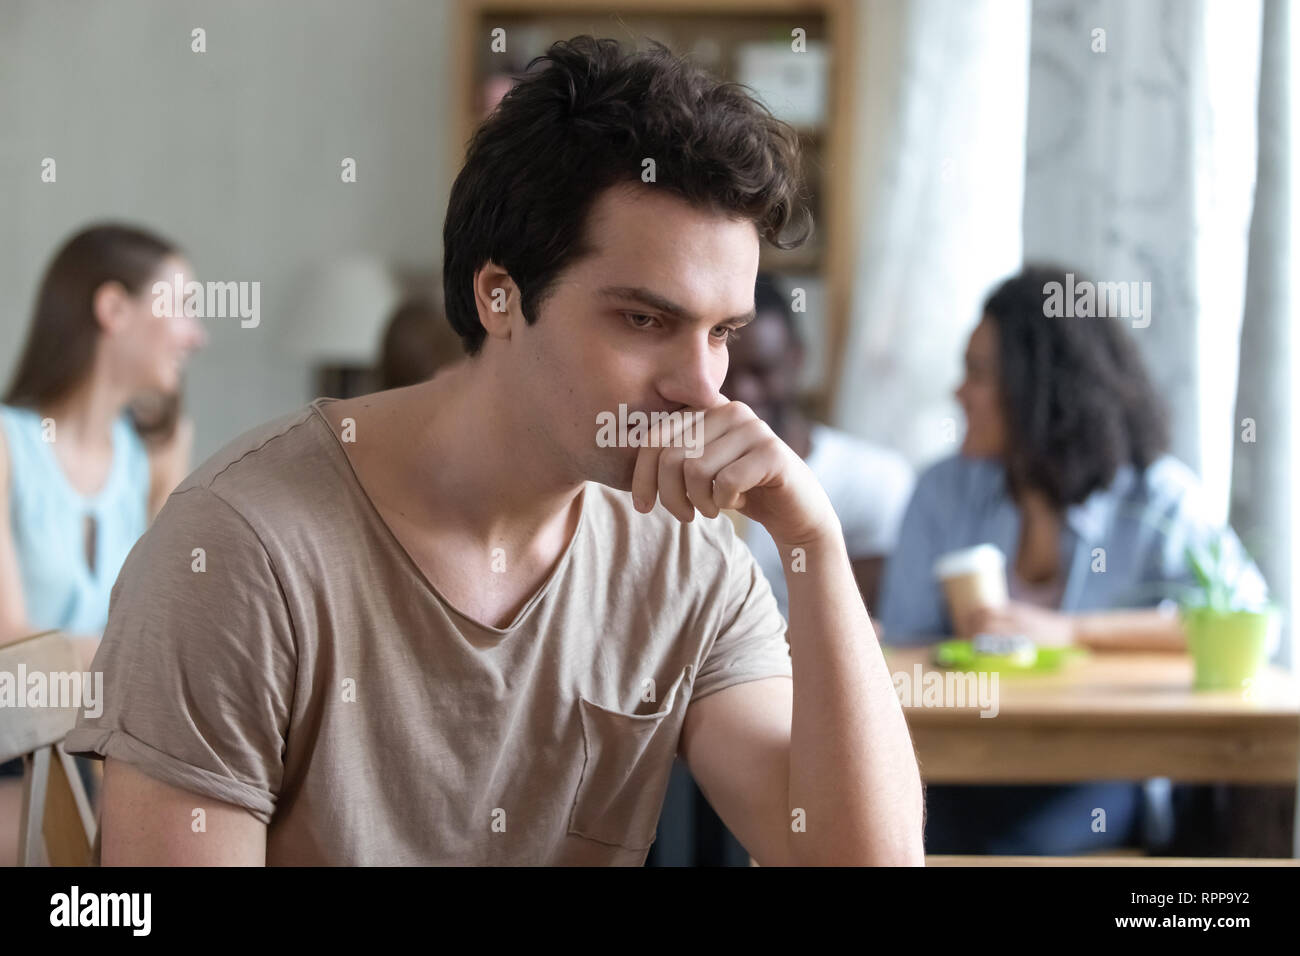 Upset thoughtful man sitting alone, low self-esteem, have no friends - Stock Image